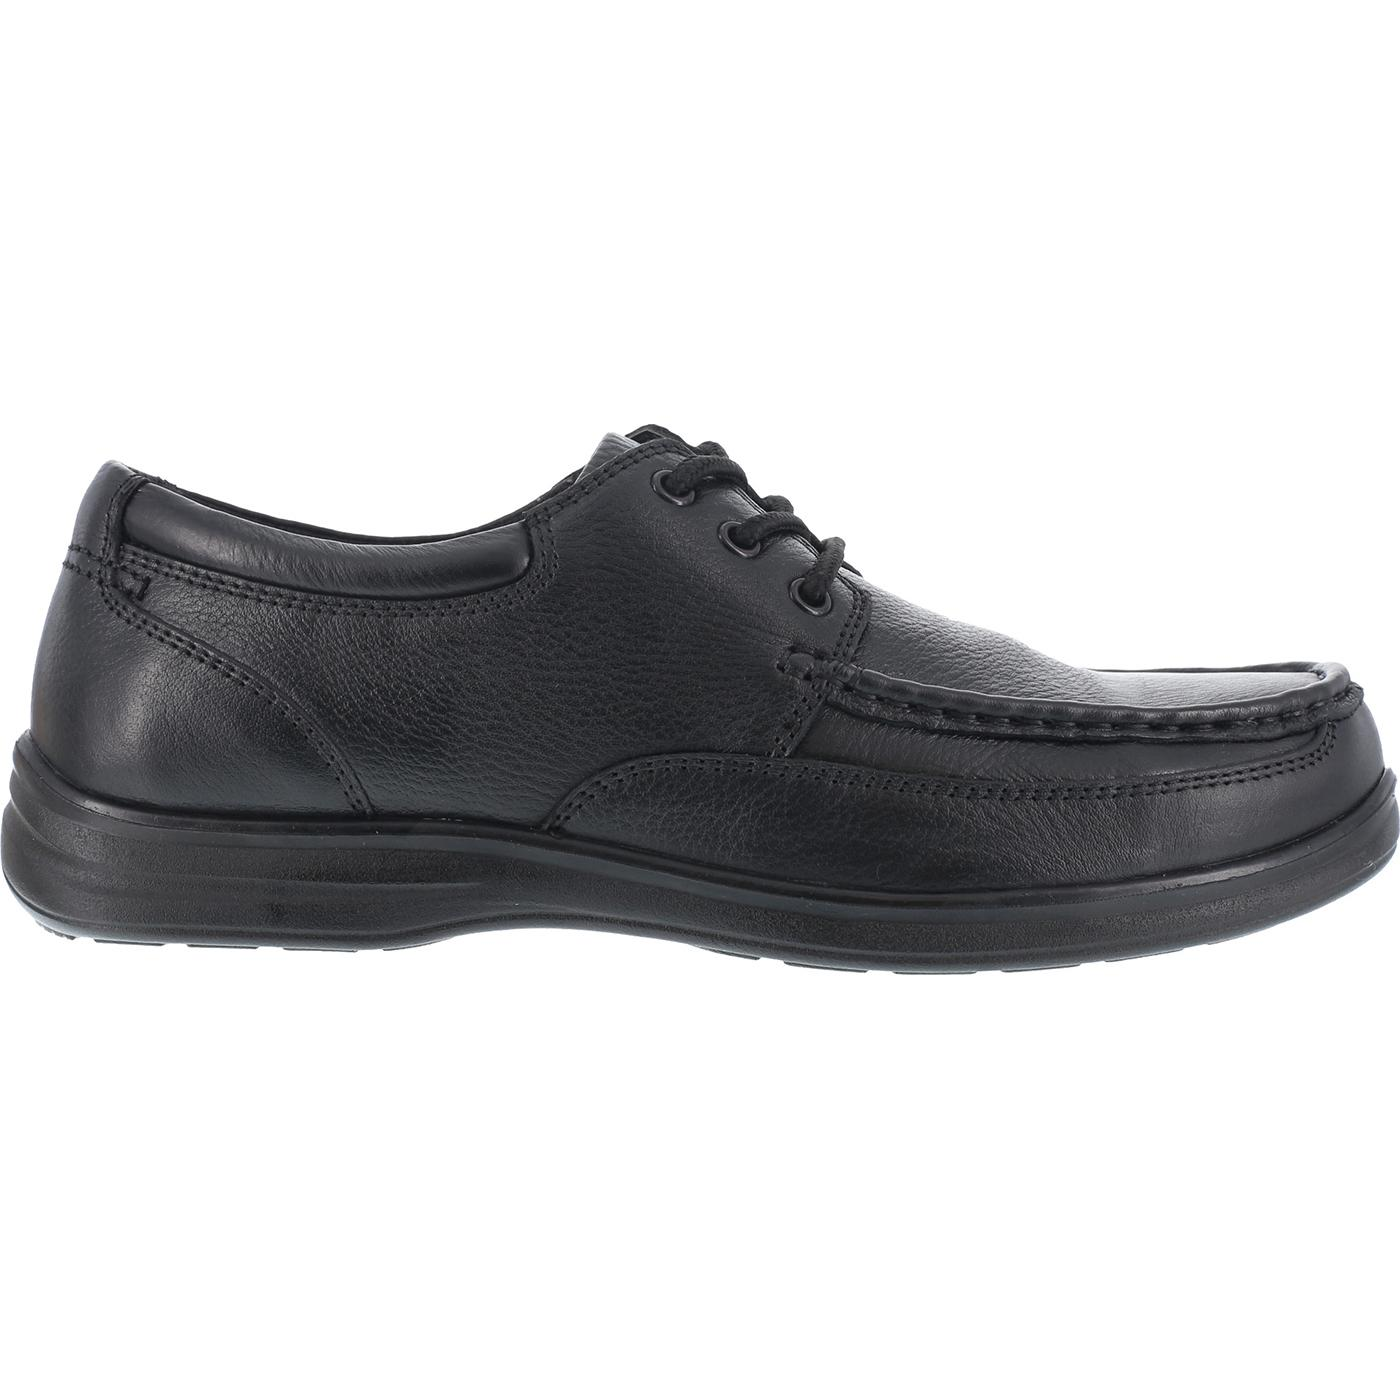 ffbae354b2d2 Florsheim Wily  Moc Toe Lace Up Steel Toe SD Black Oxford